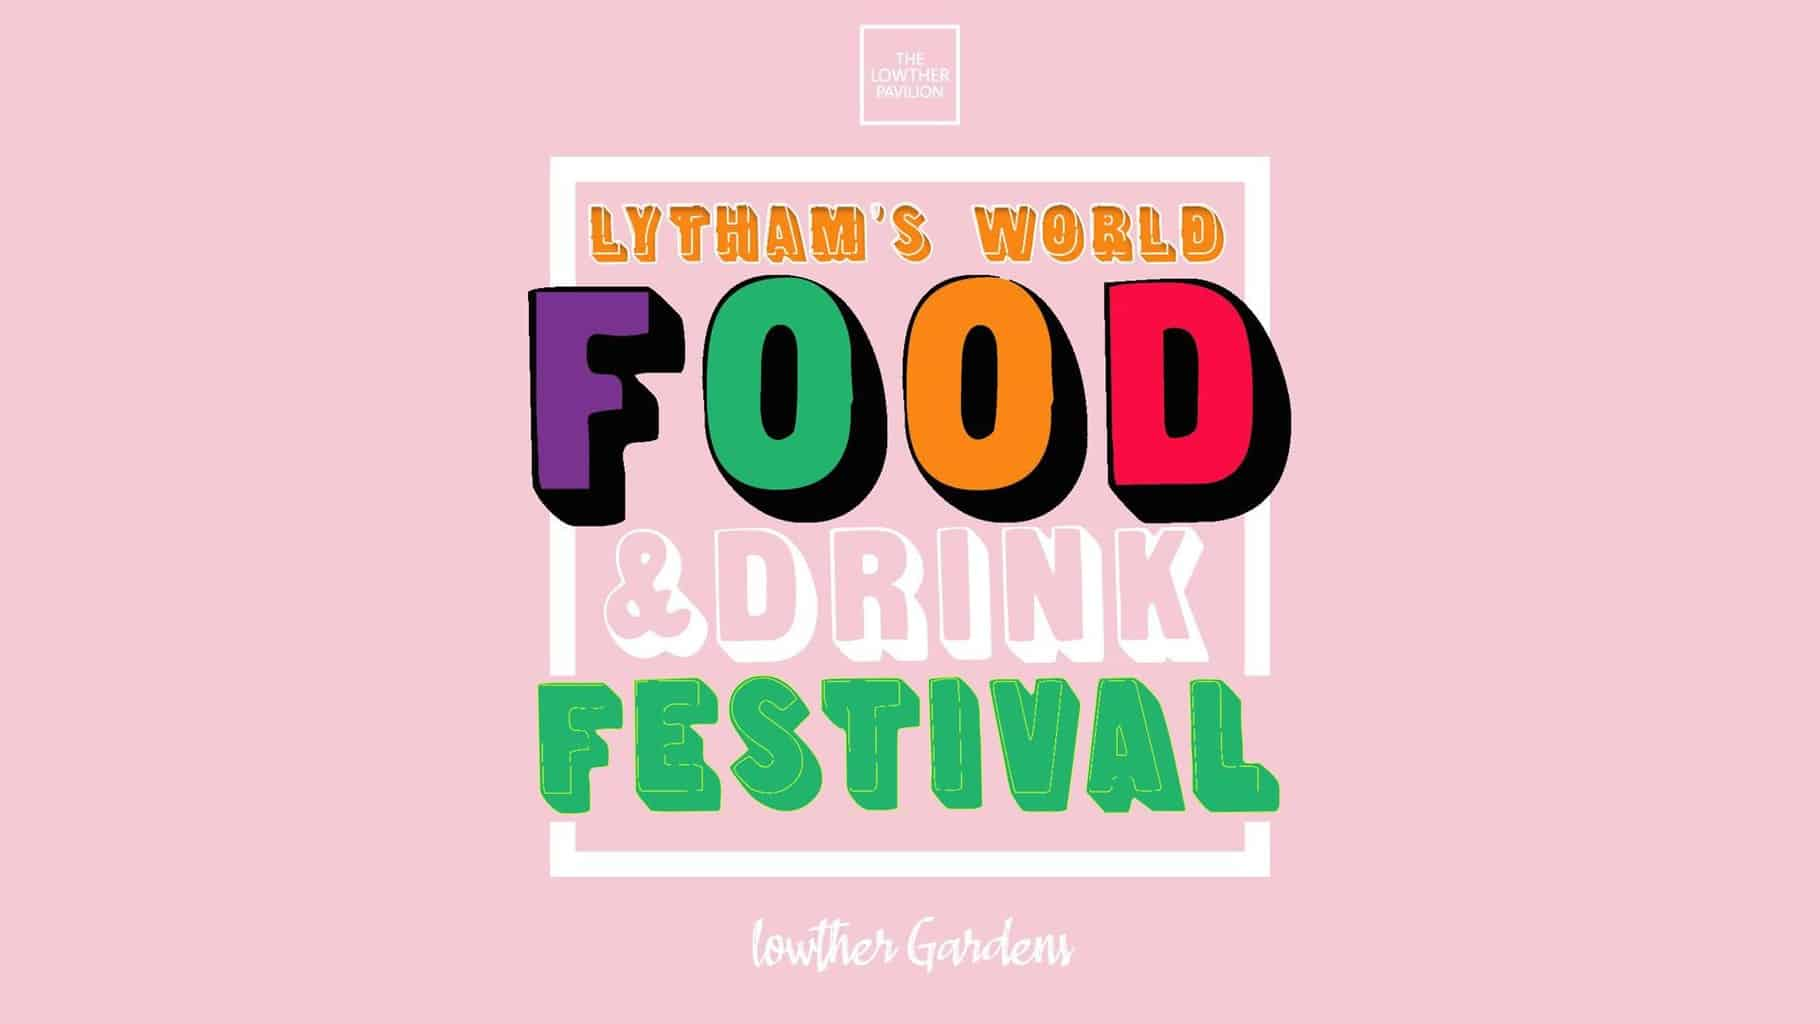 Bank Holiday Weekend – Lytham's World Food and Drink Free Festival